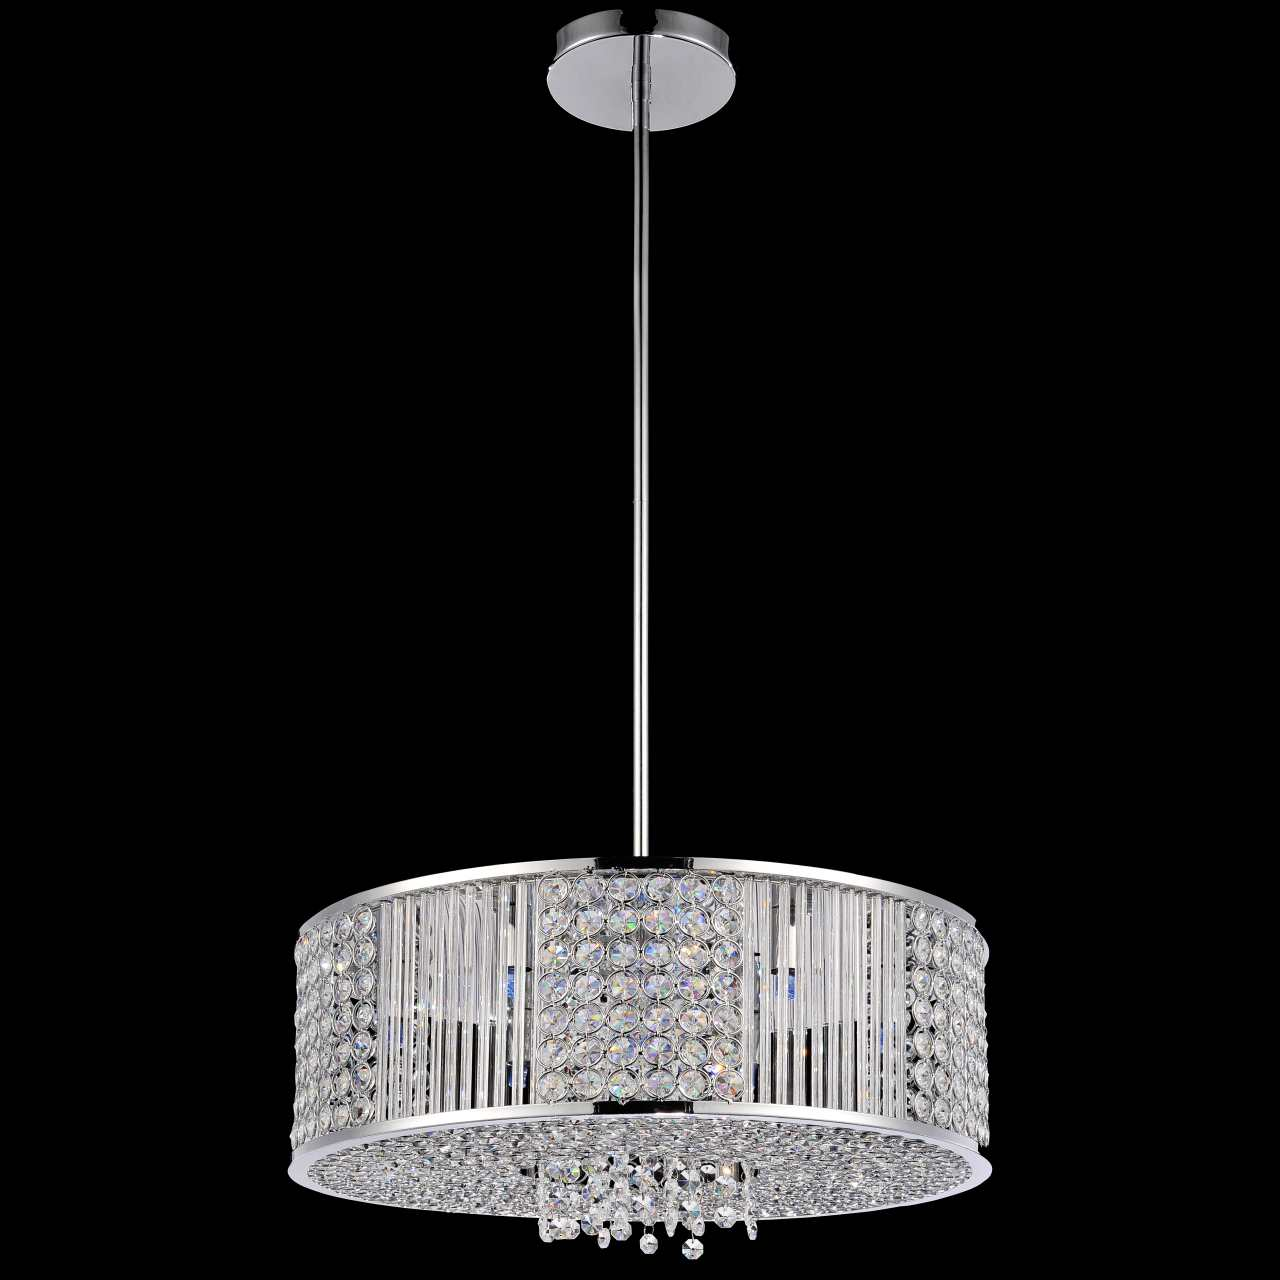 Brizzo lighting stores 16 cristallo modern crystal round pendant picture of 16 cristallo modern crystal round pendant chandelier polished chrome 6 lights mozeypictures Gallery